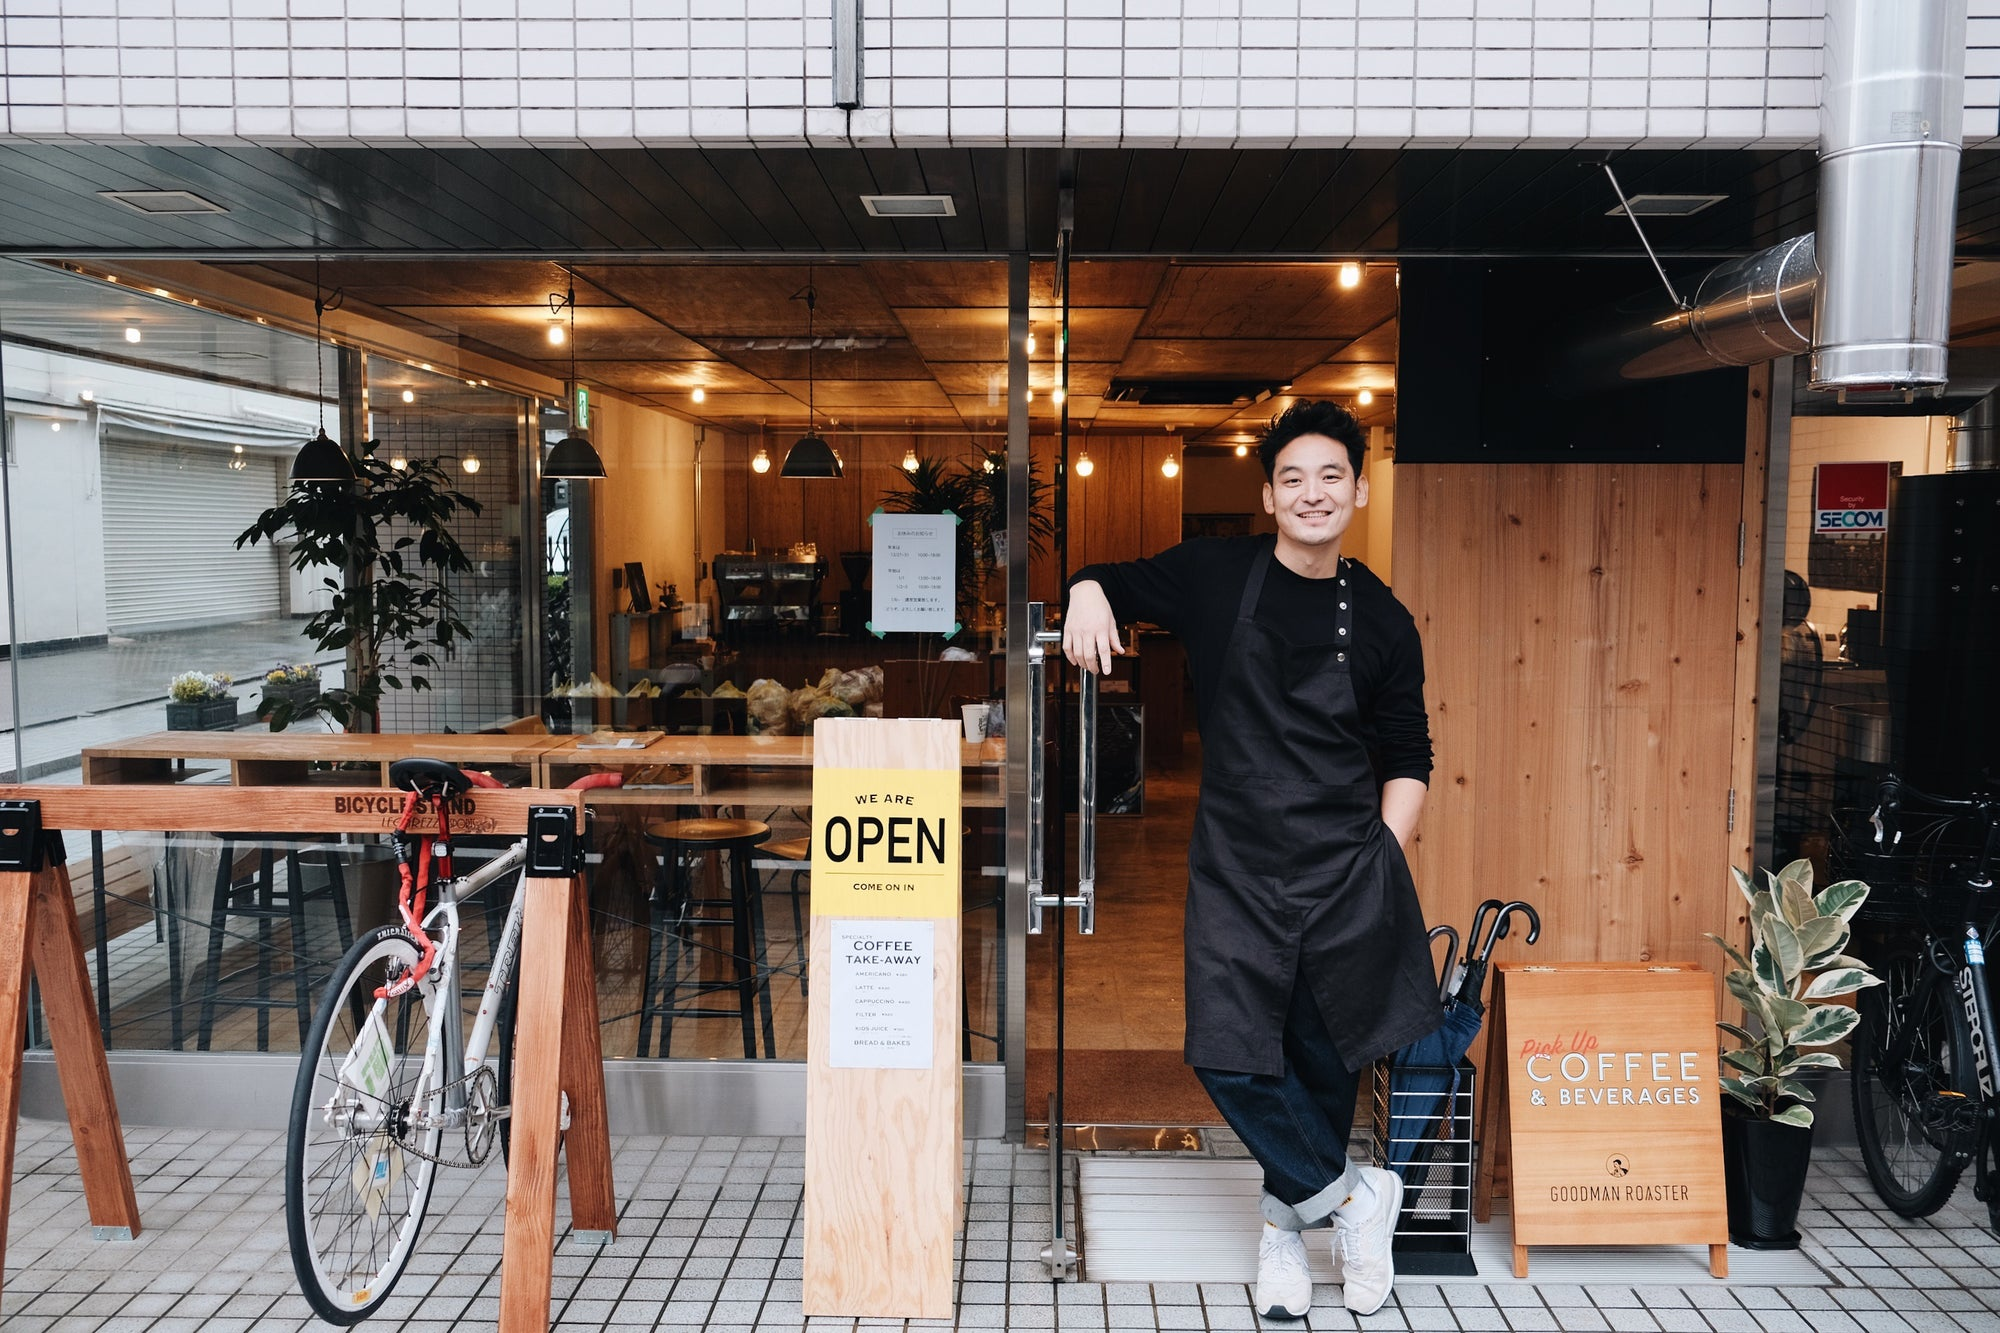 Goodman Roaster Kyoto (Kyoto): 2020 January Kurasu Partner Roaster Subscription